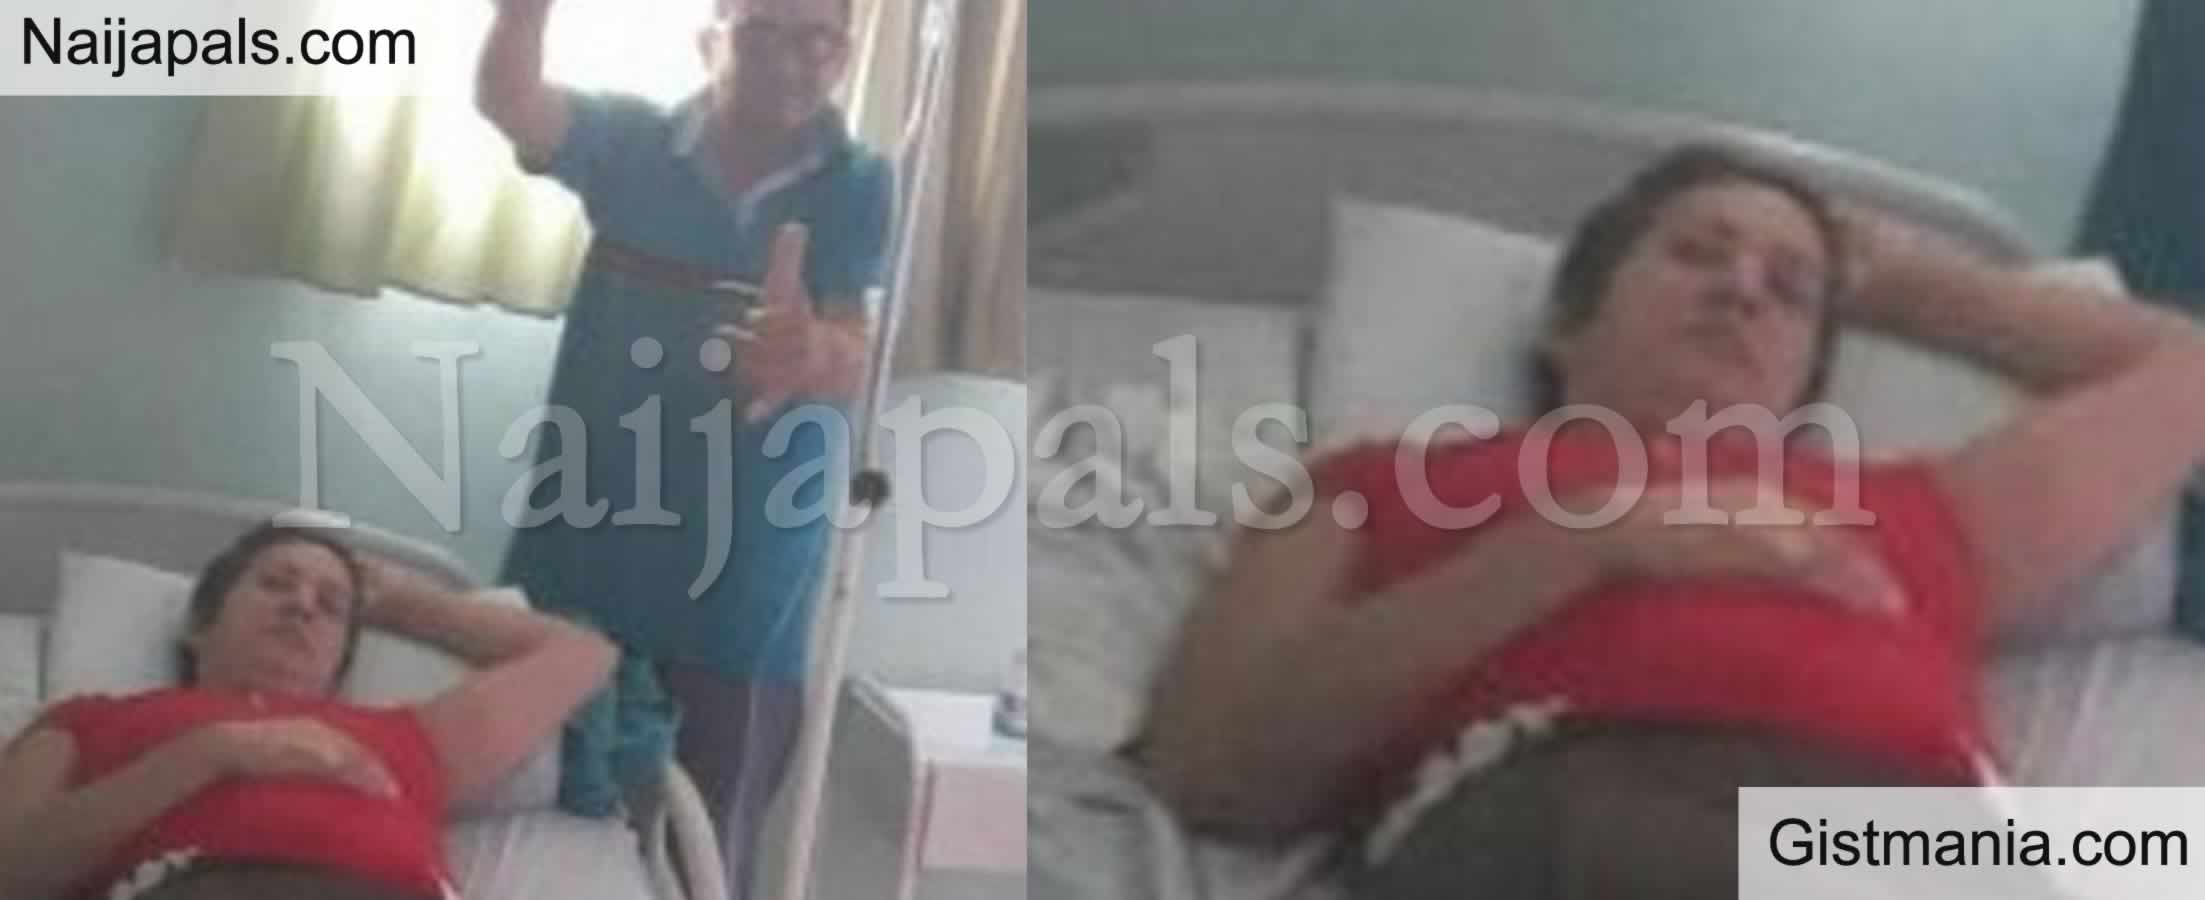 Woman Wakes Up In a Body Bag After Being Declared Dead